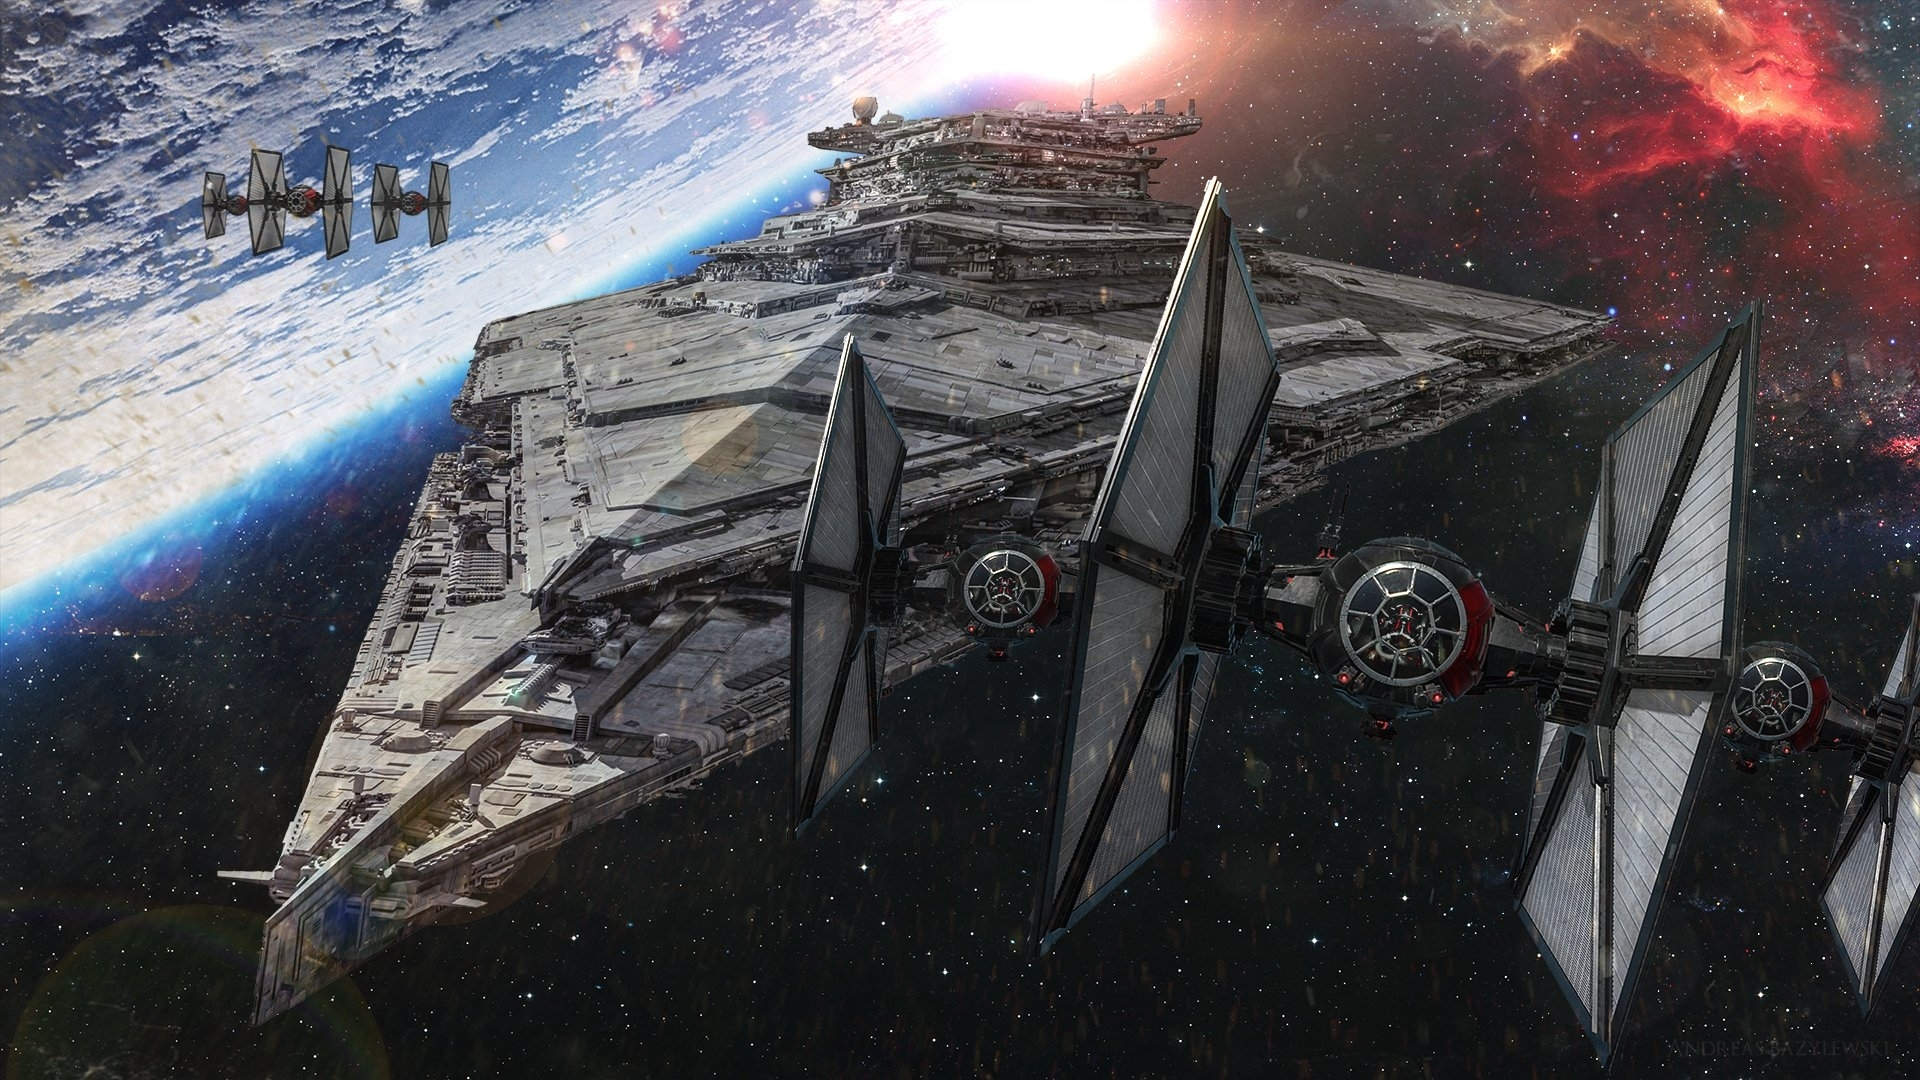 10 Top Star Destroyer Wallpaper Hd FULL HD 1080p For PC Desktop